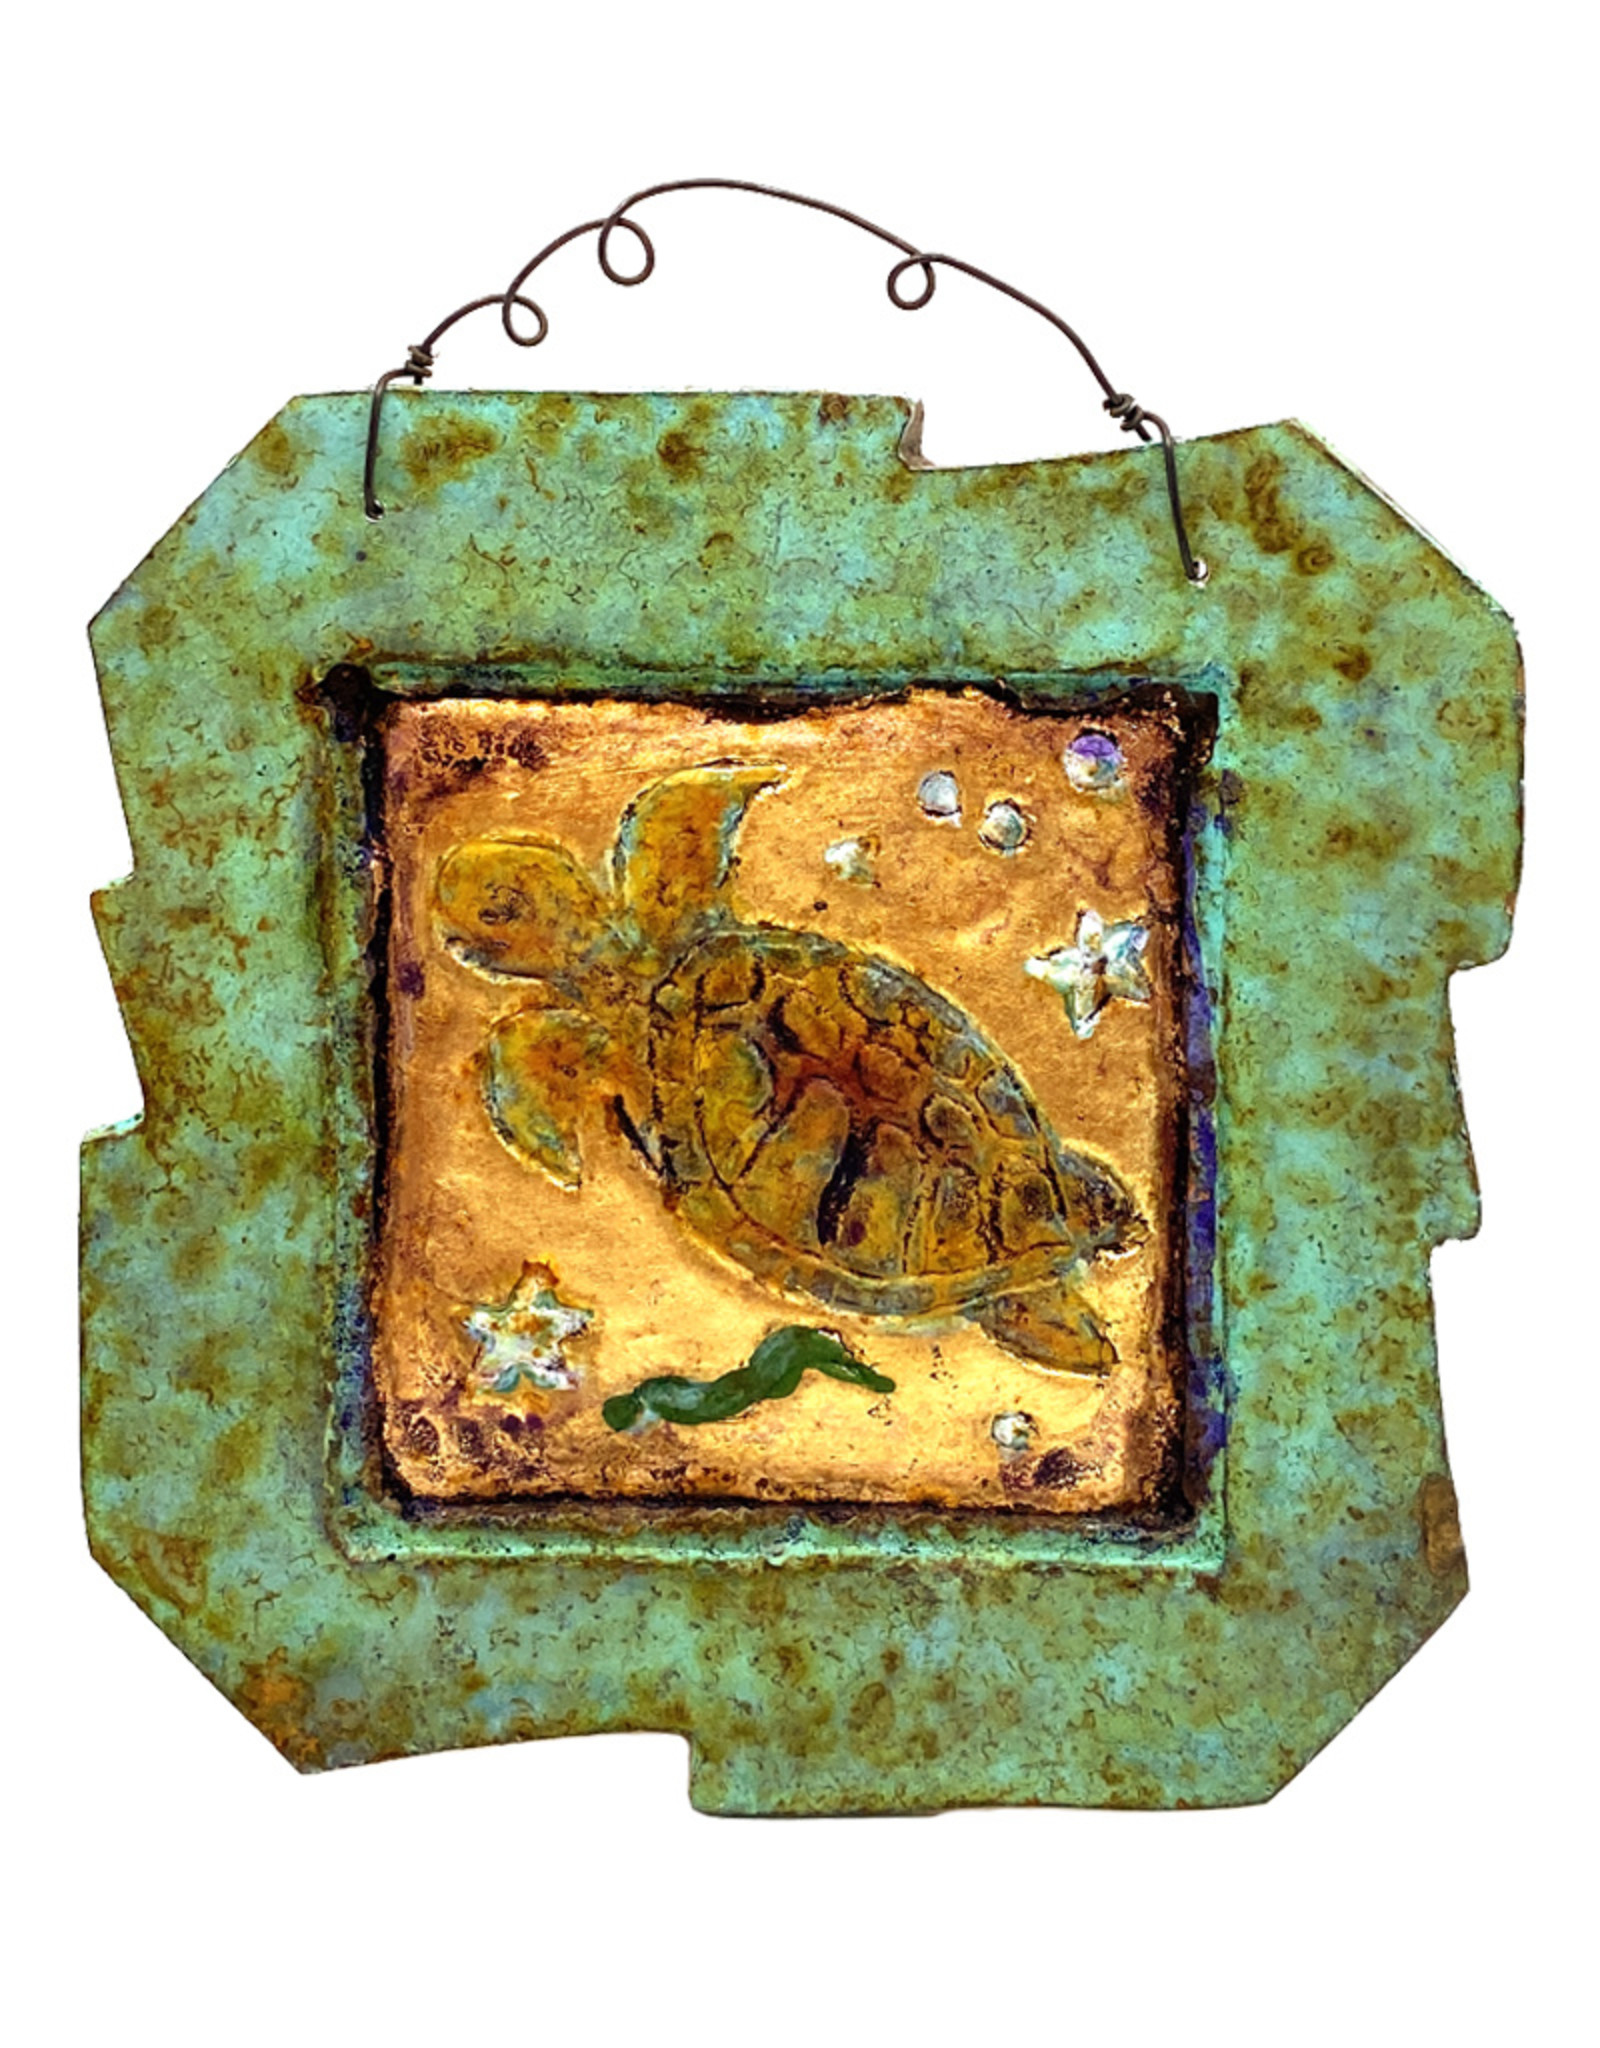 PAPER & STONE SMALL TURTLE WALL PLAQUE